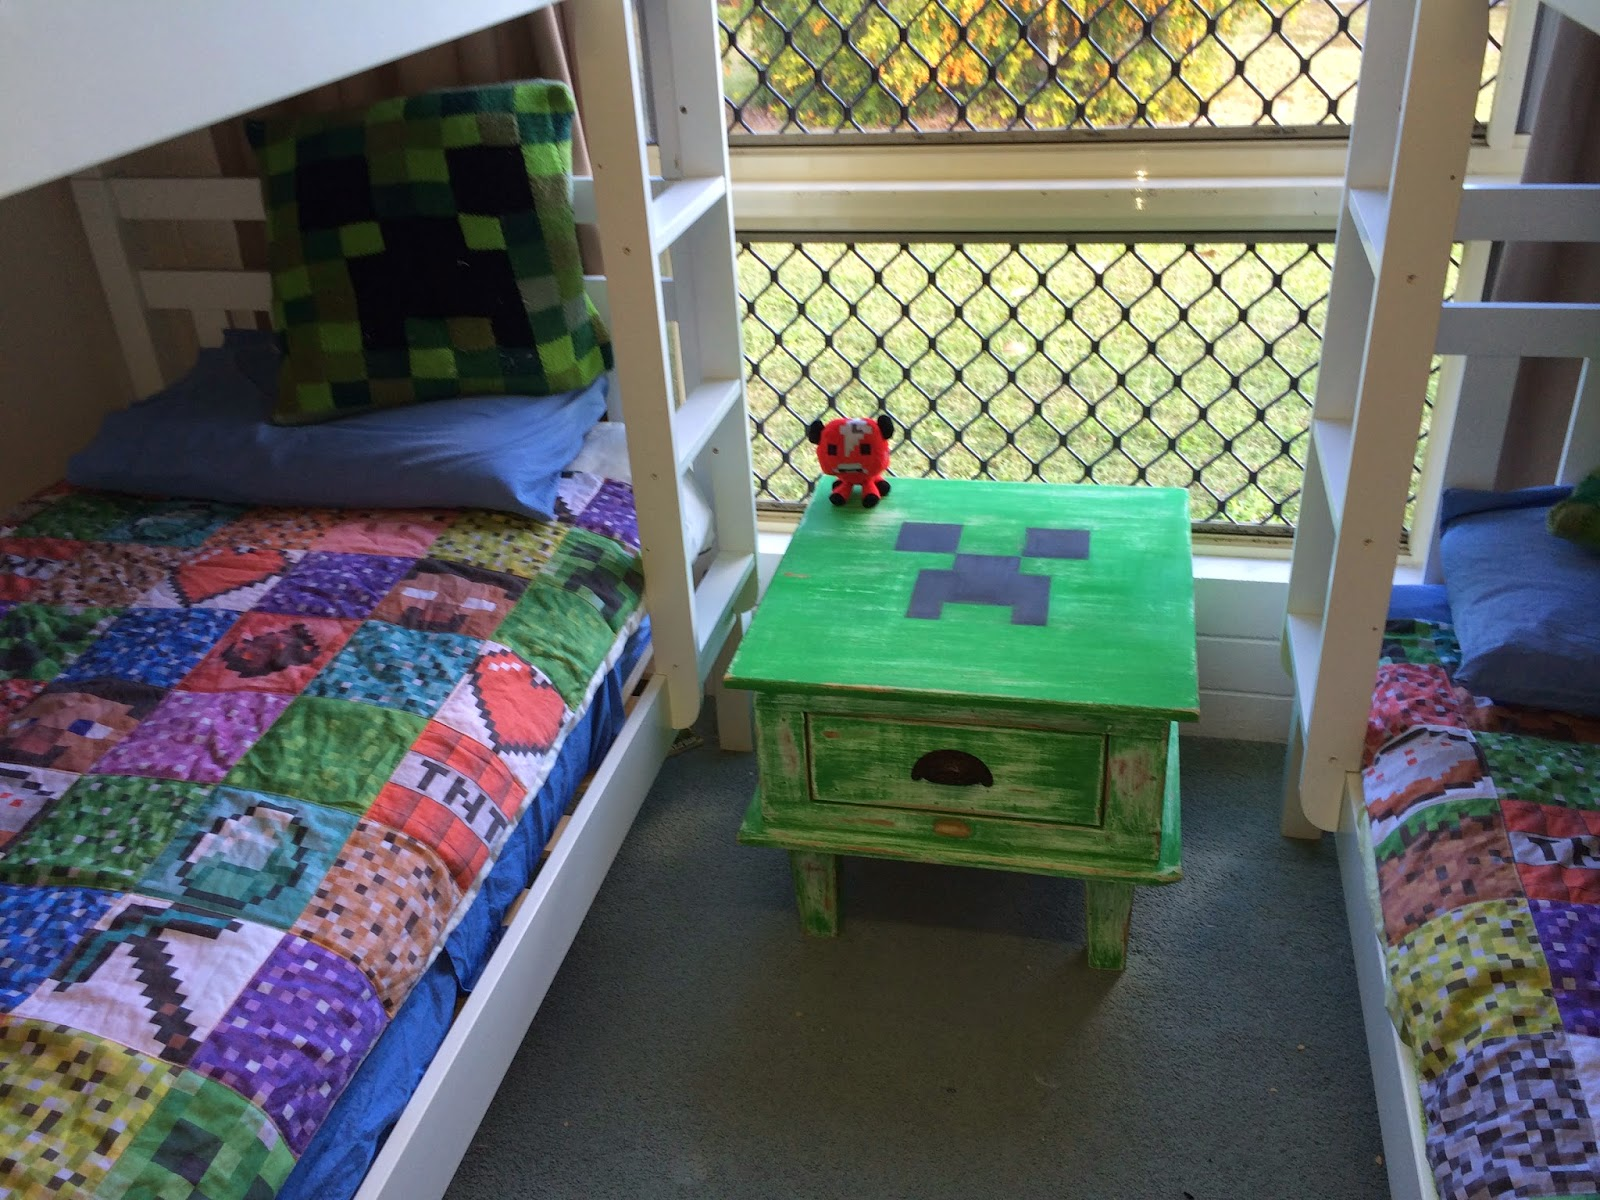 find me outthe shed: minecraft coffee table